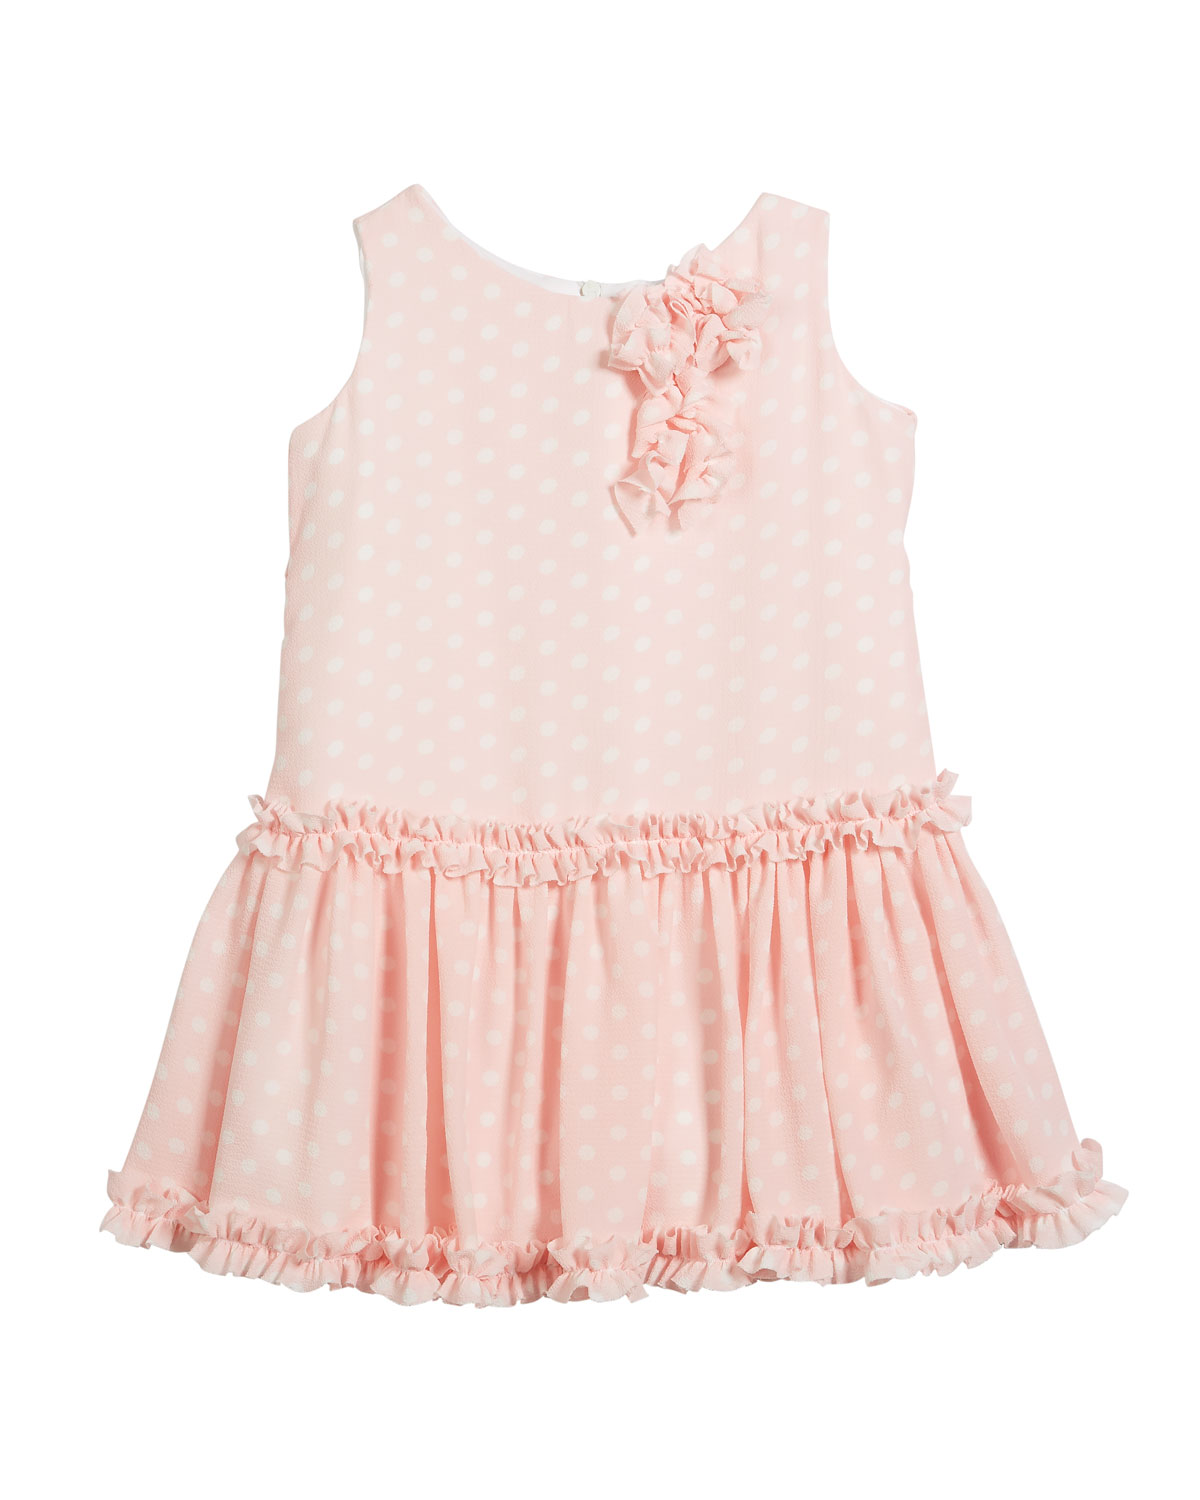 Pretty in Pink Polka-Dot Ruffle Dress, Size 2-6